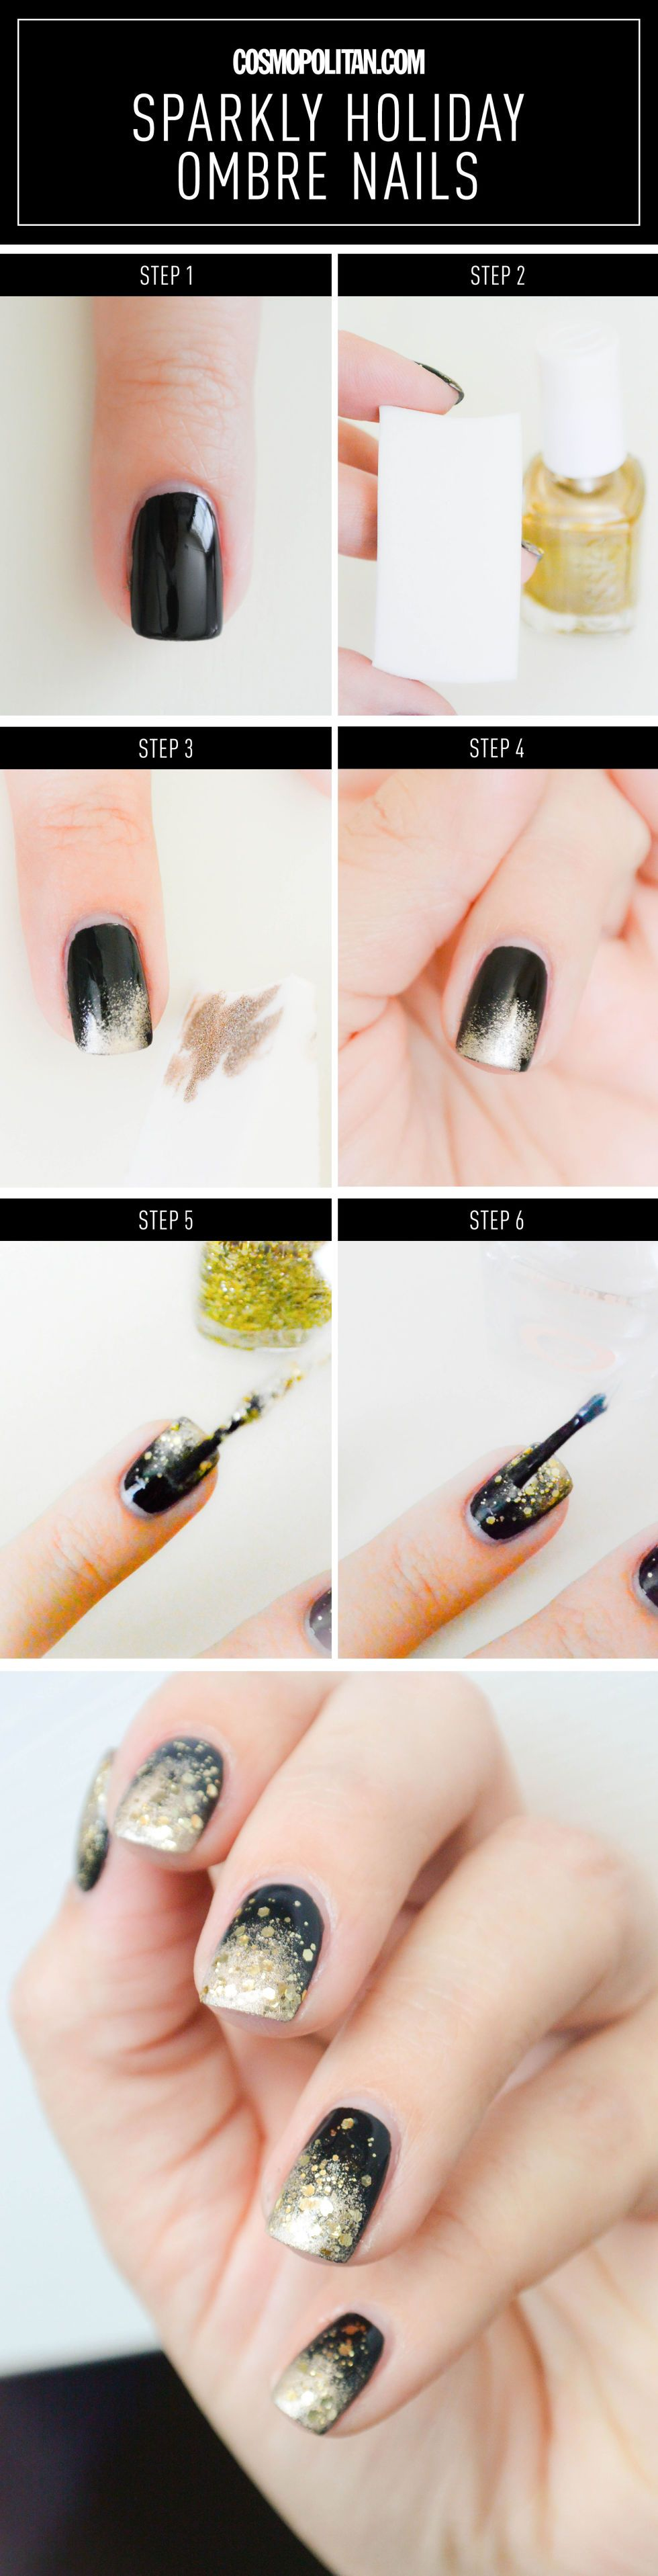 Nail Art How-To: Sparkly Black and Gold Ombré Mani | Essie ...